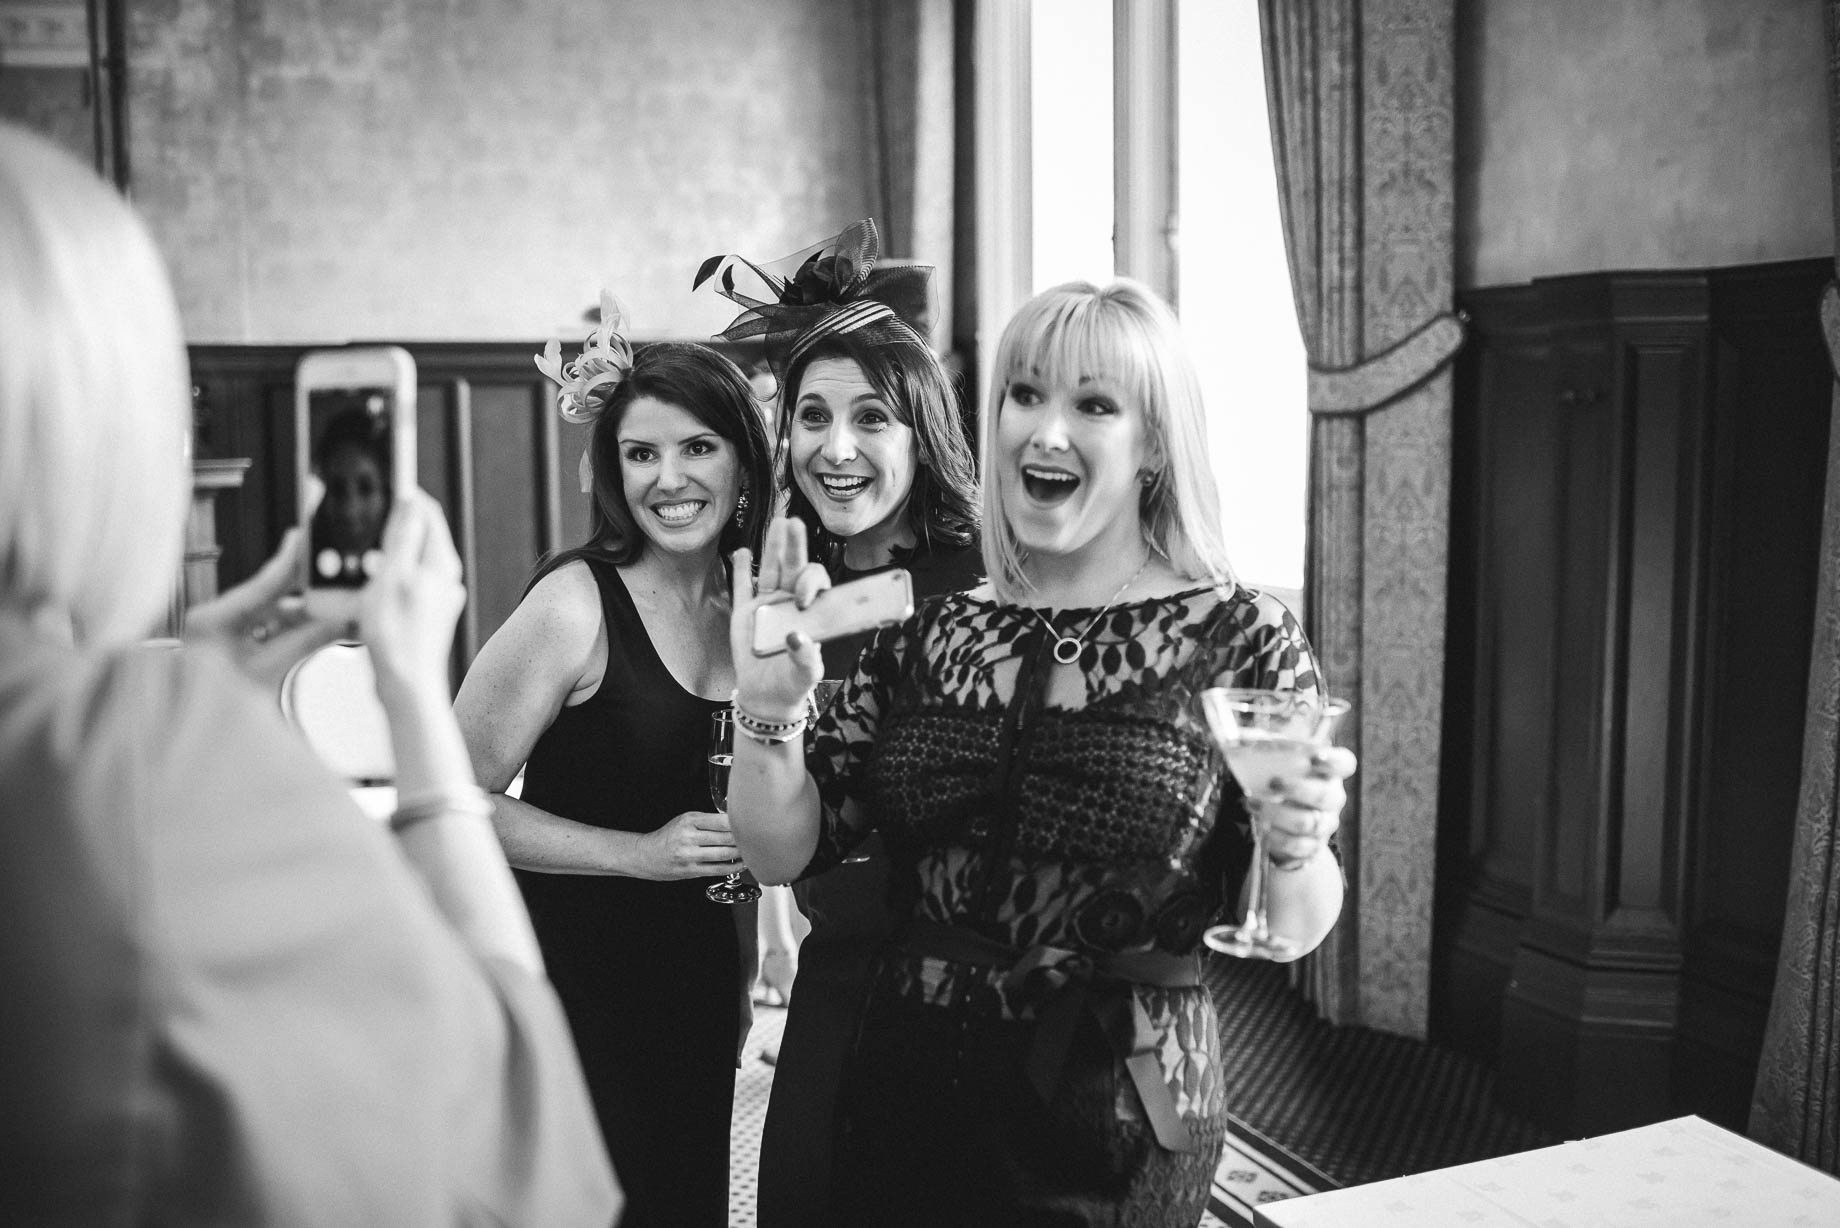 Bllomsbury House wedding photography in London - Katie and Taylor (68 of 156)